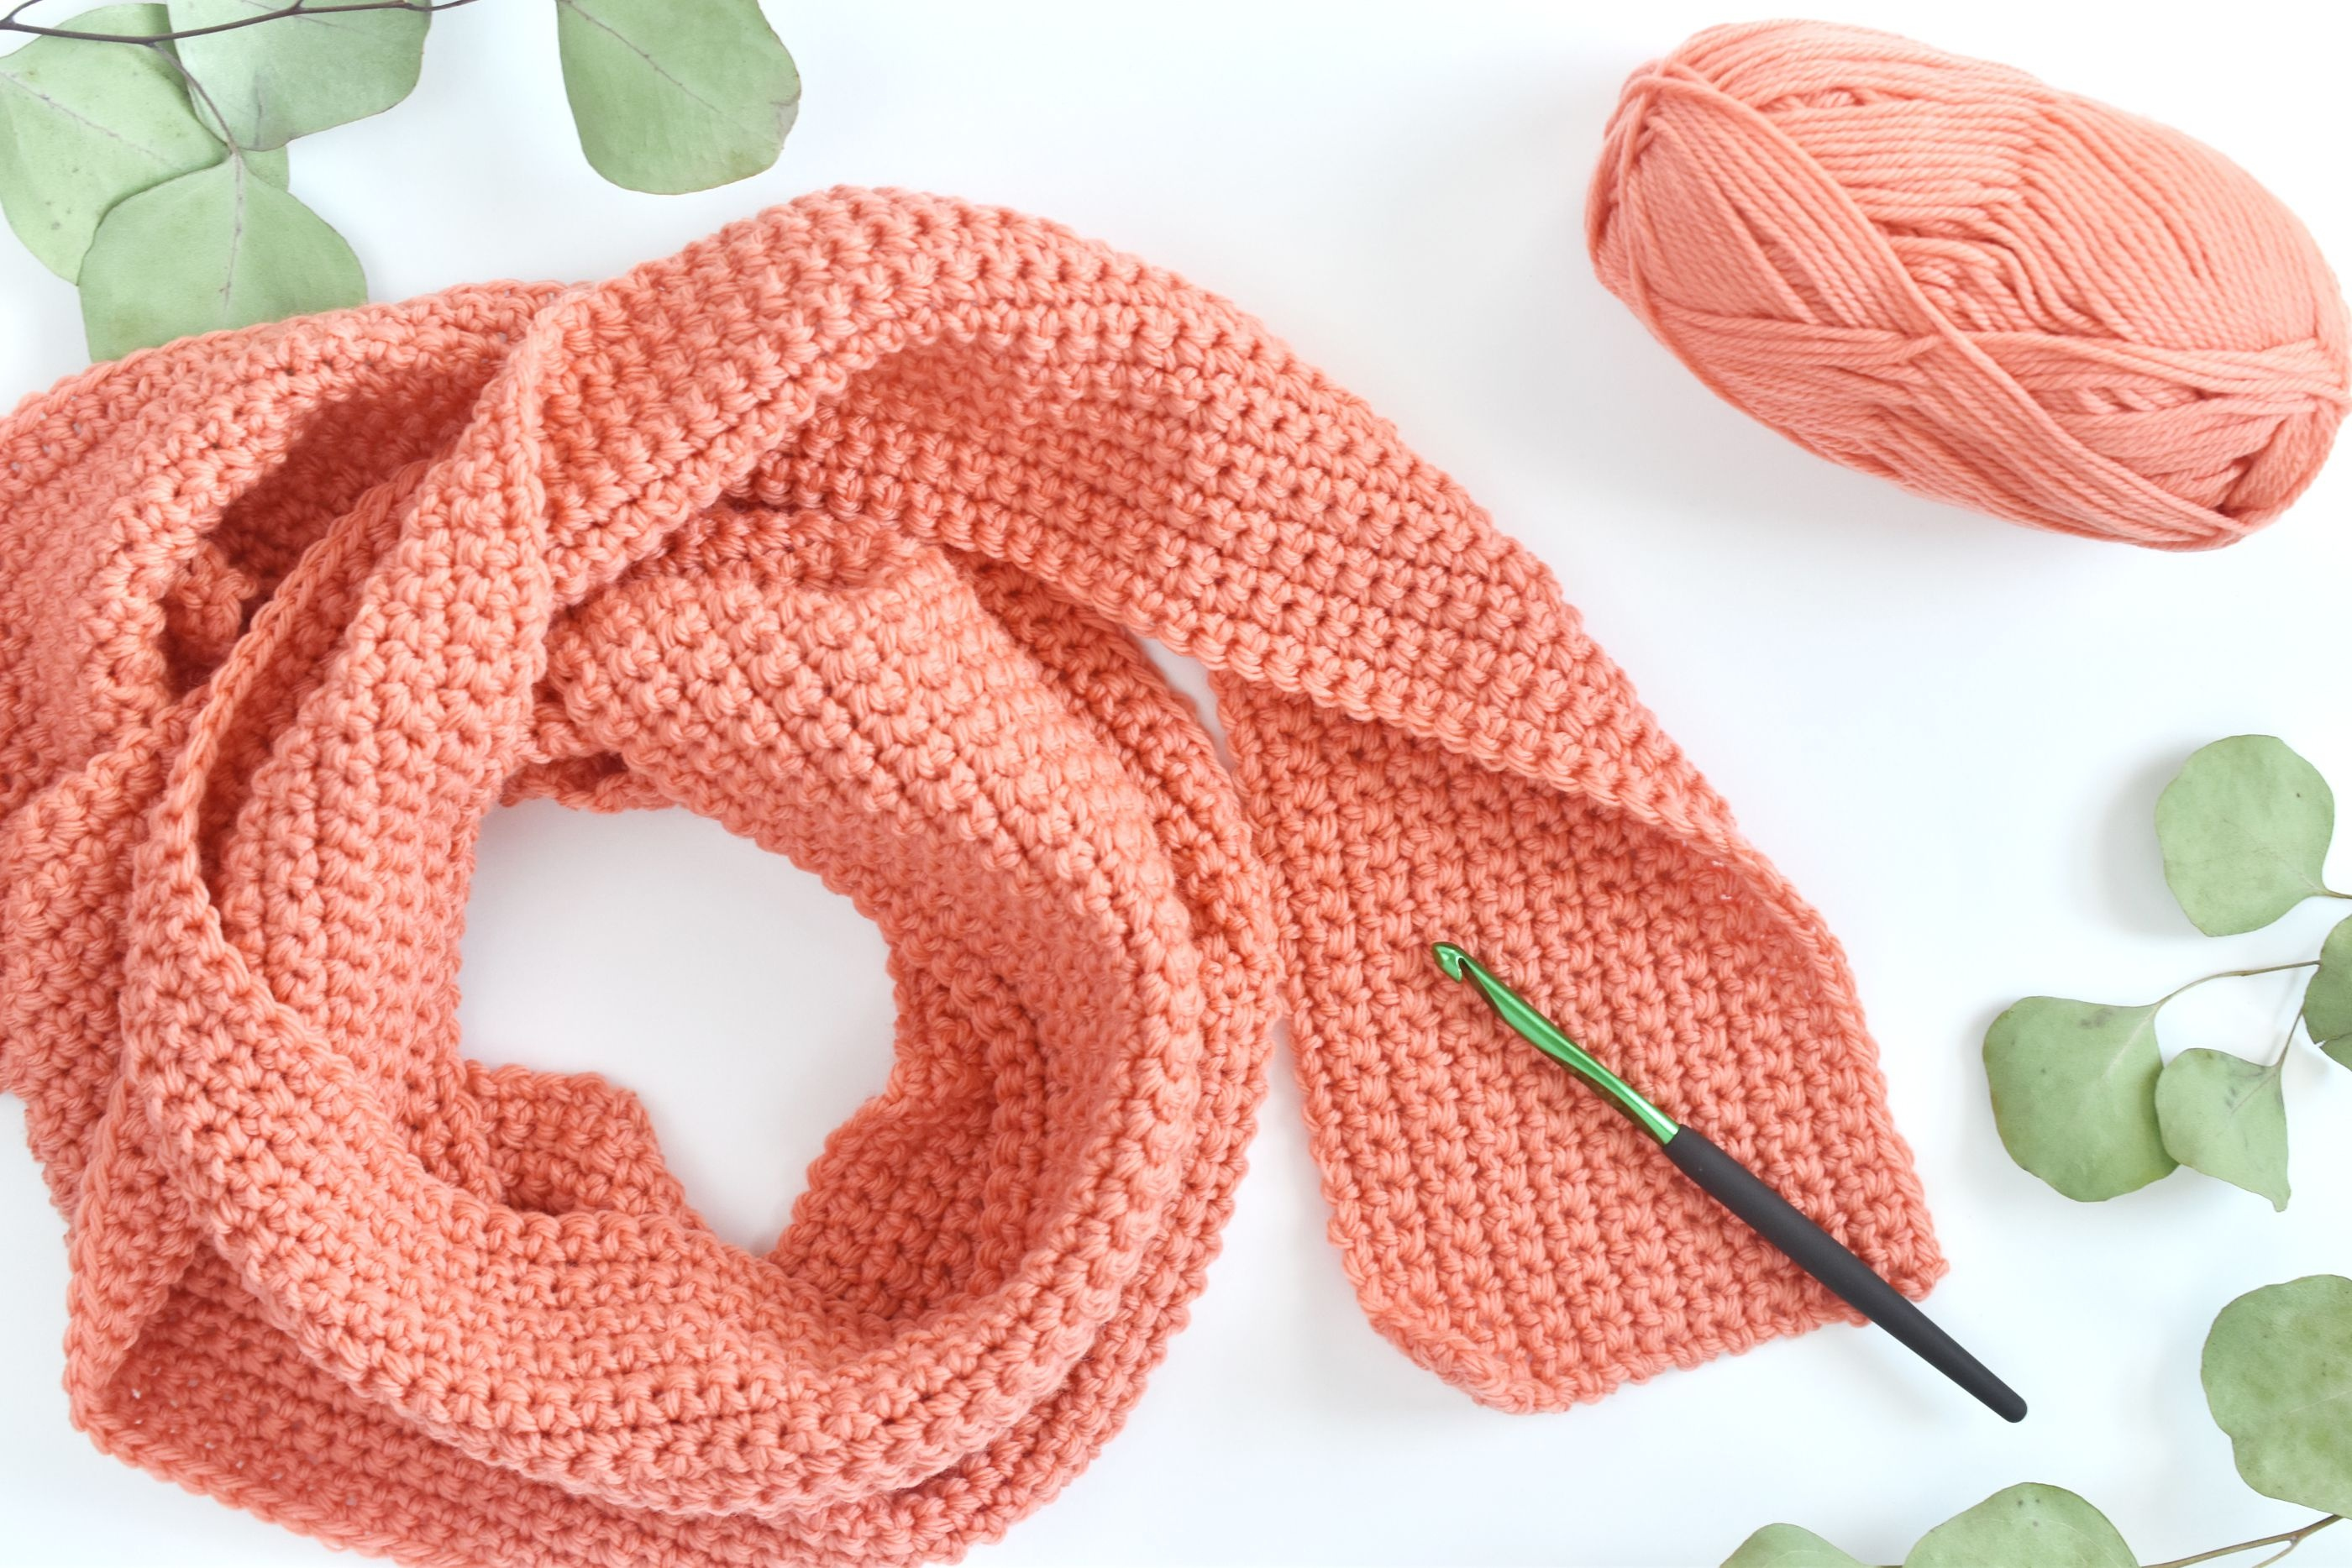 How To Crochet A Scarf For Beginners - Free Printable Crochet Scarf Patterns